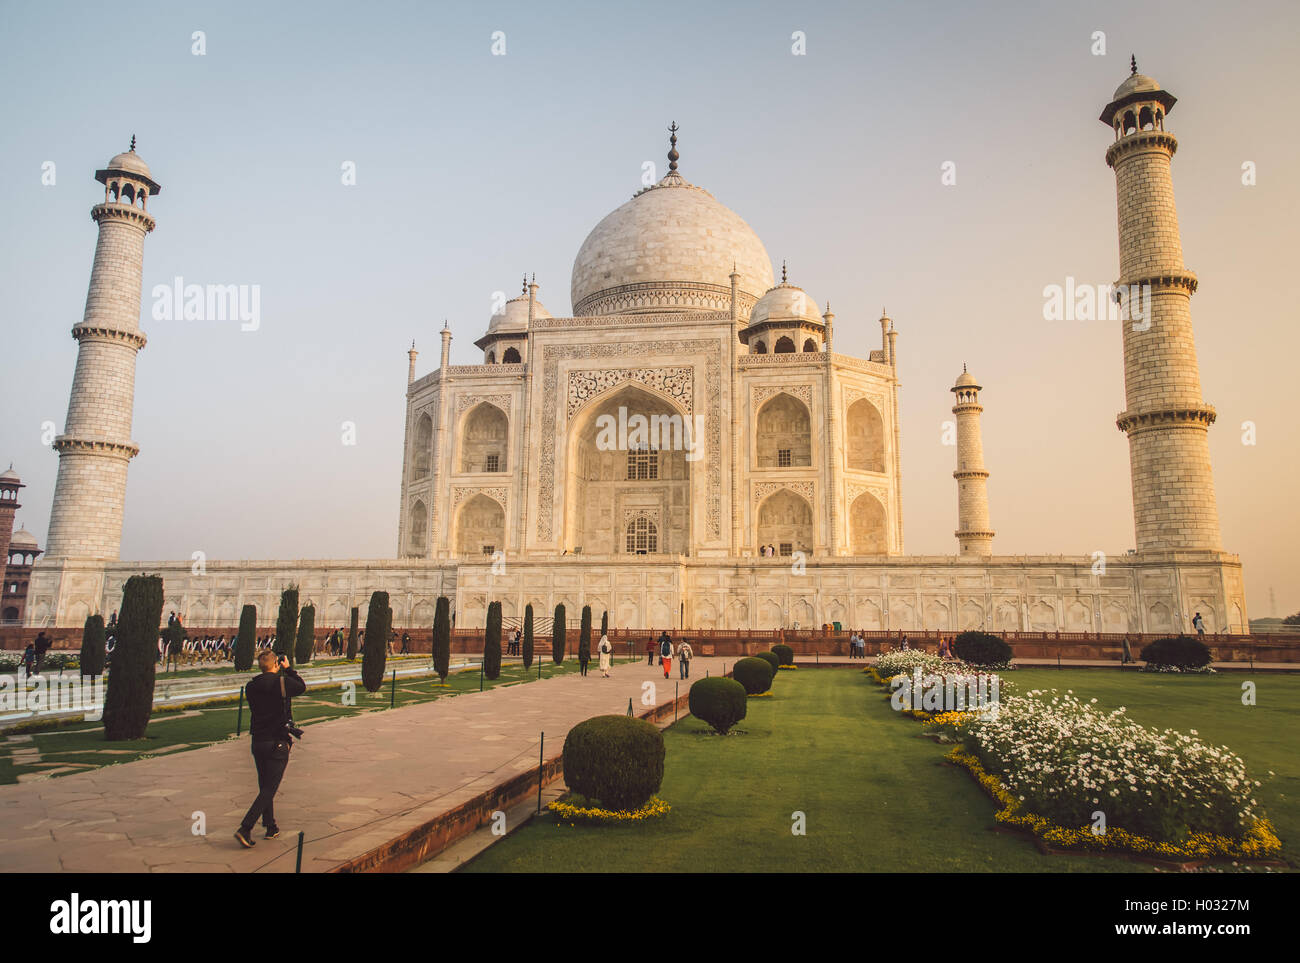 AGRA, INDIA - 28 FEBRUARY 2015: View of Taj Mahal towards South side. Visitor with camera. Post-processed with grain, - Stock Image